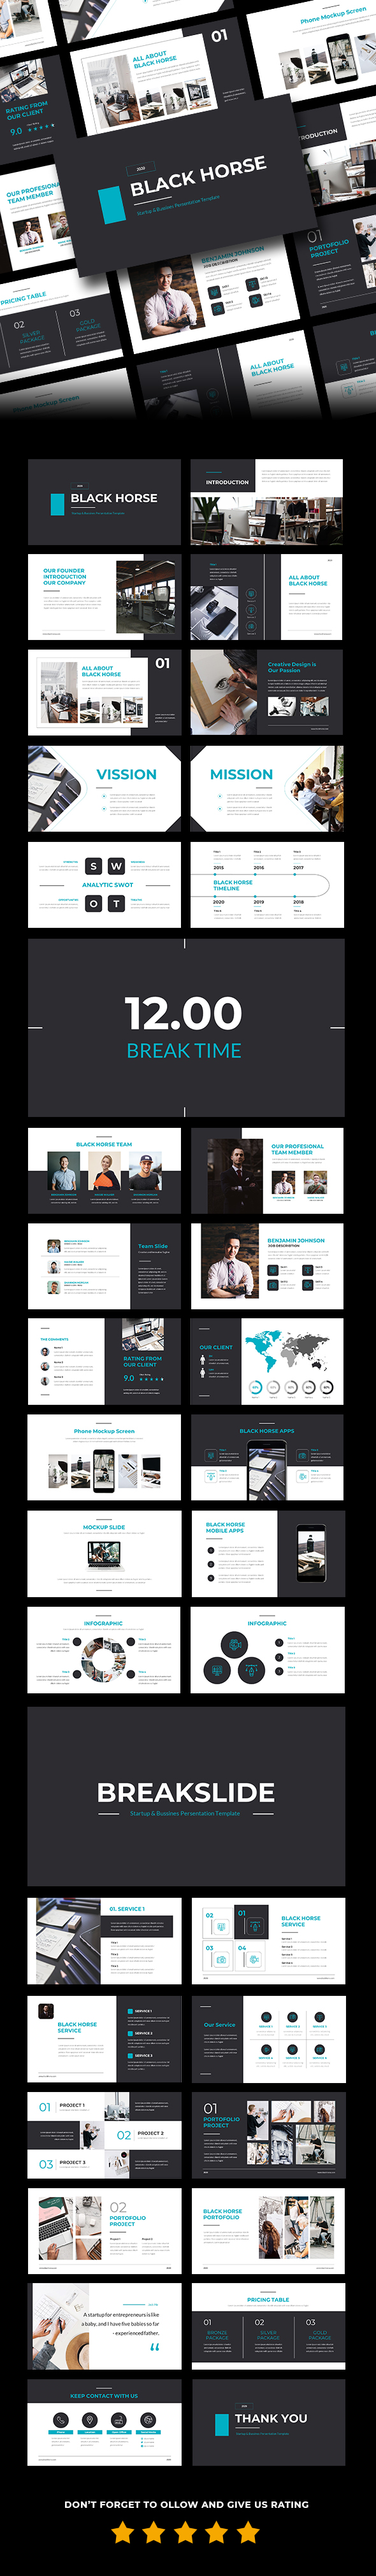 BlackHorse - Startup & Bussines PowerPoint Template